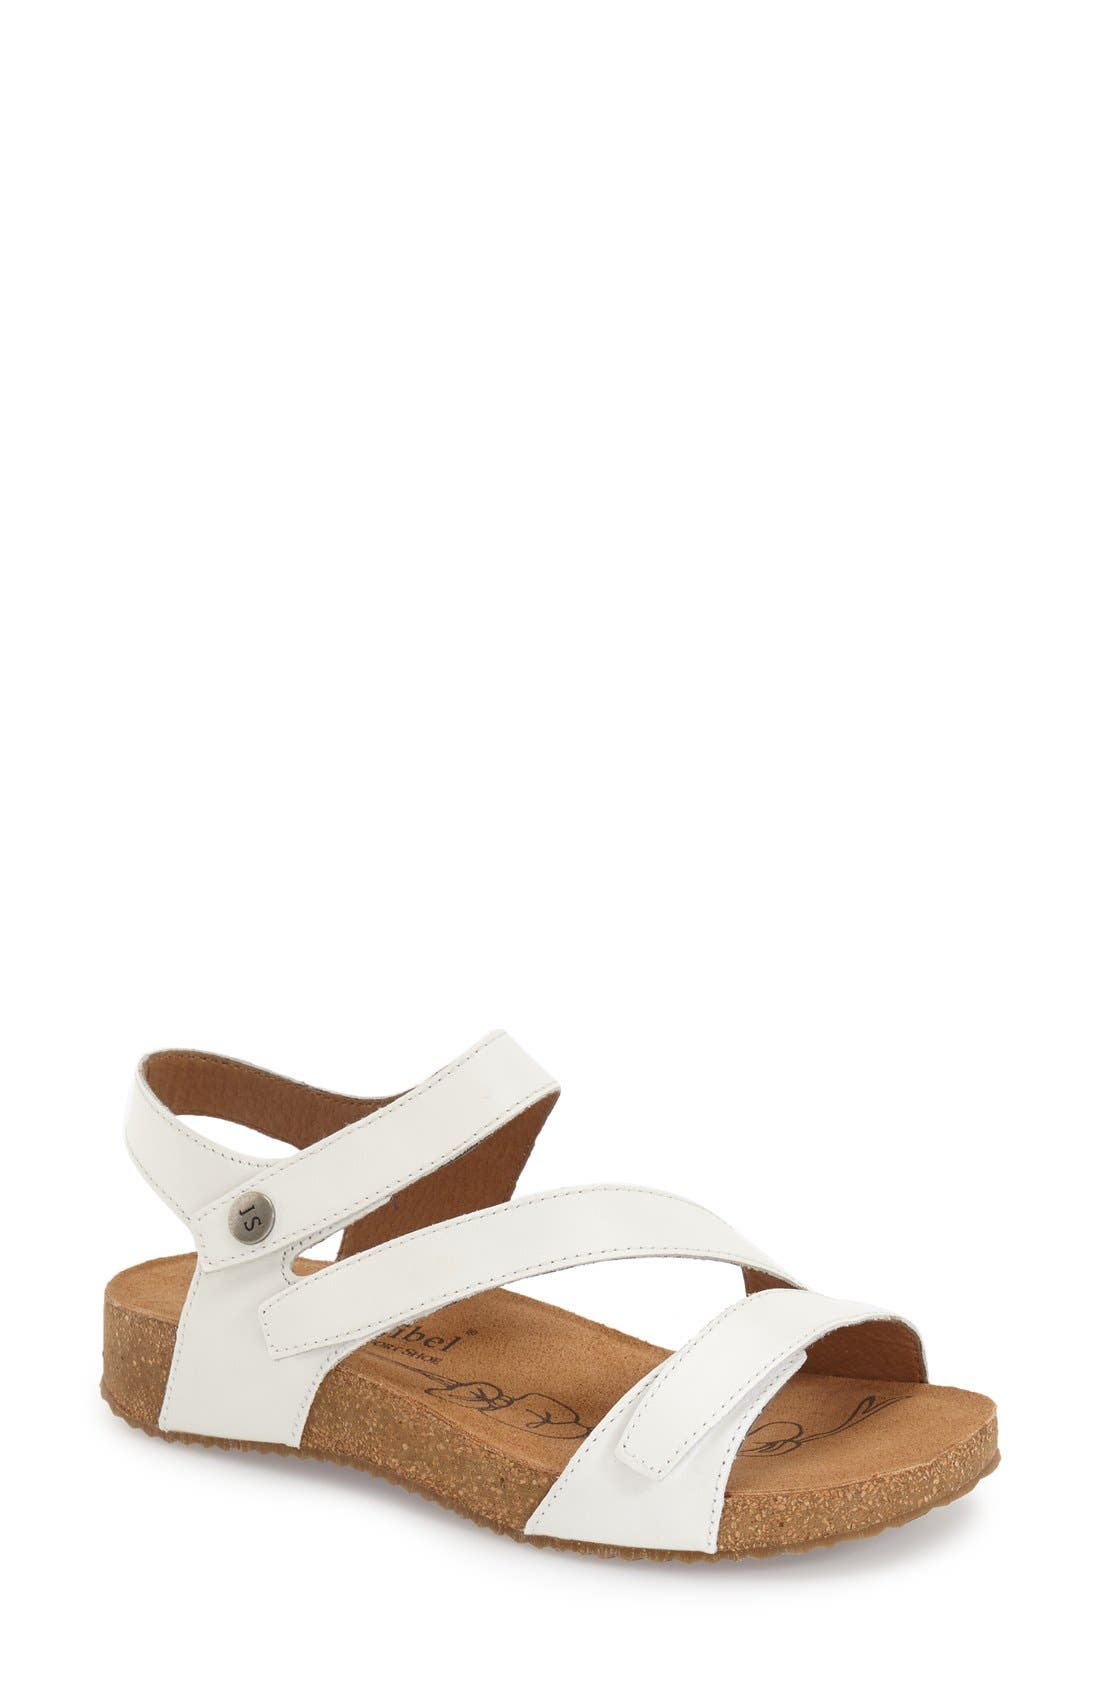 A trio of adjustable leather straps perfect the fit on a comfortable sandal shaped with a cushioned, anatomic footbed and supported by a springy cork platform. Style Name: Josef Seibel \\\'Tonga\\\' Leather Sandal (Women). Style Number: 865413. Available in stores.